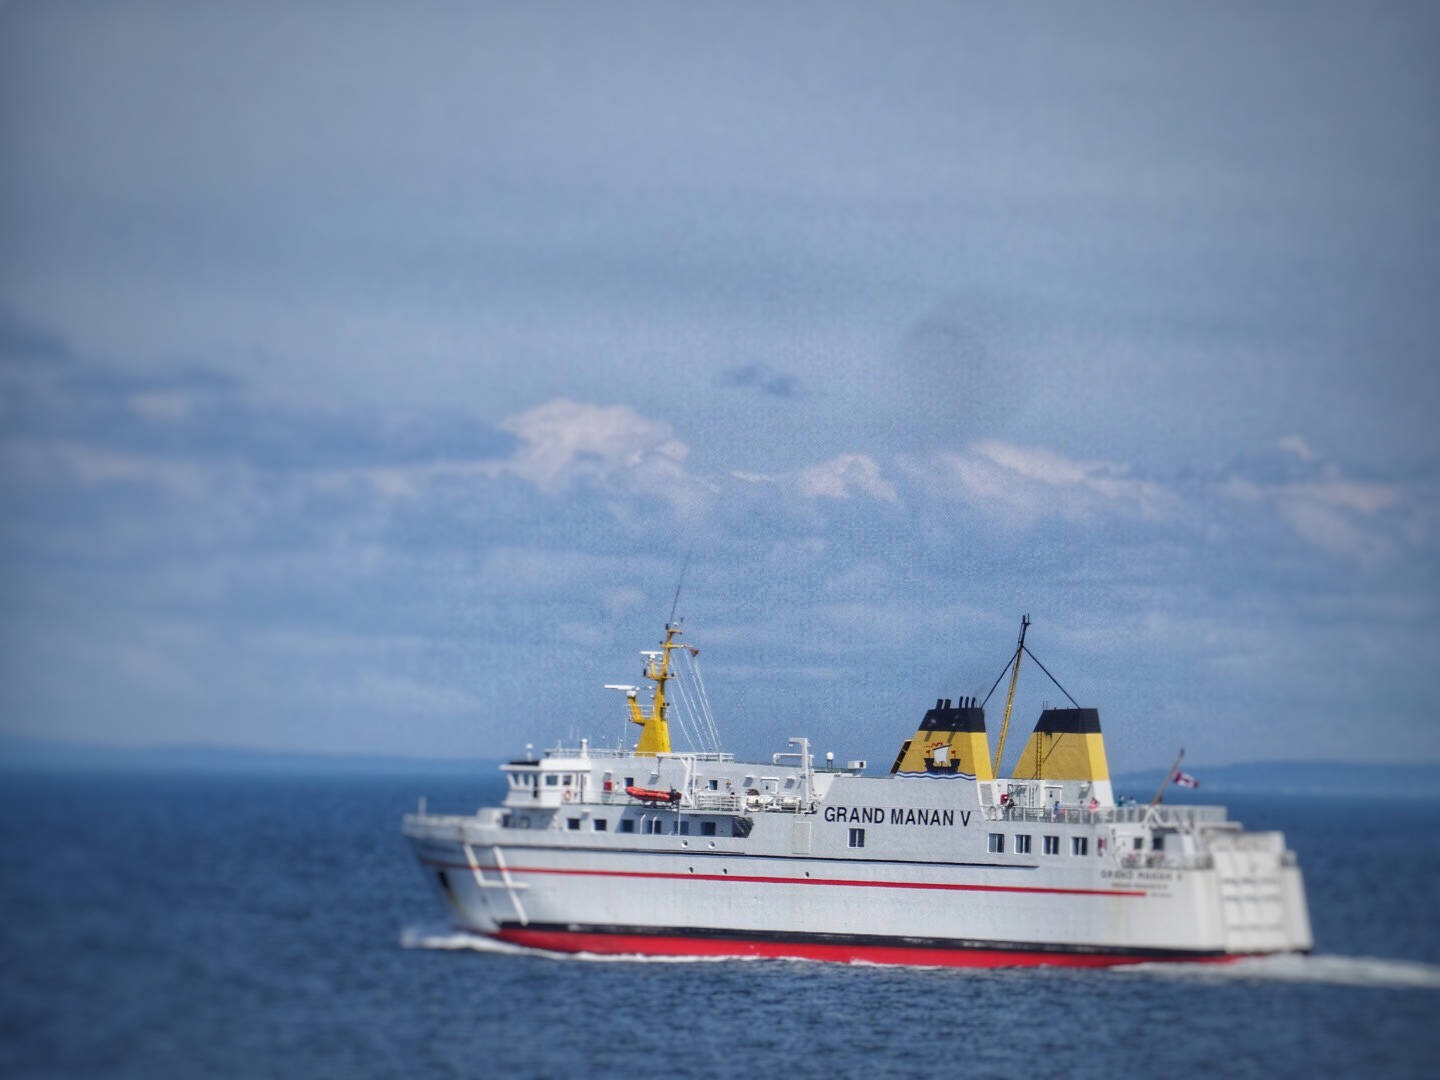 The Grand Manan V ferry heading back to Blacks Harbour, New Brunswick